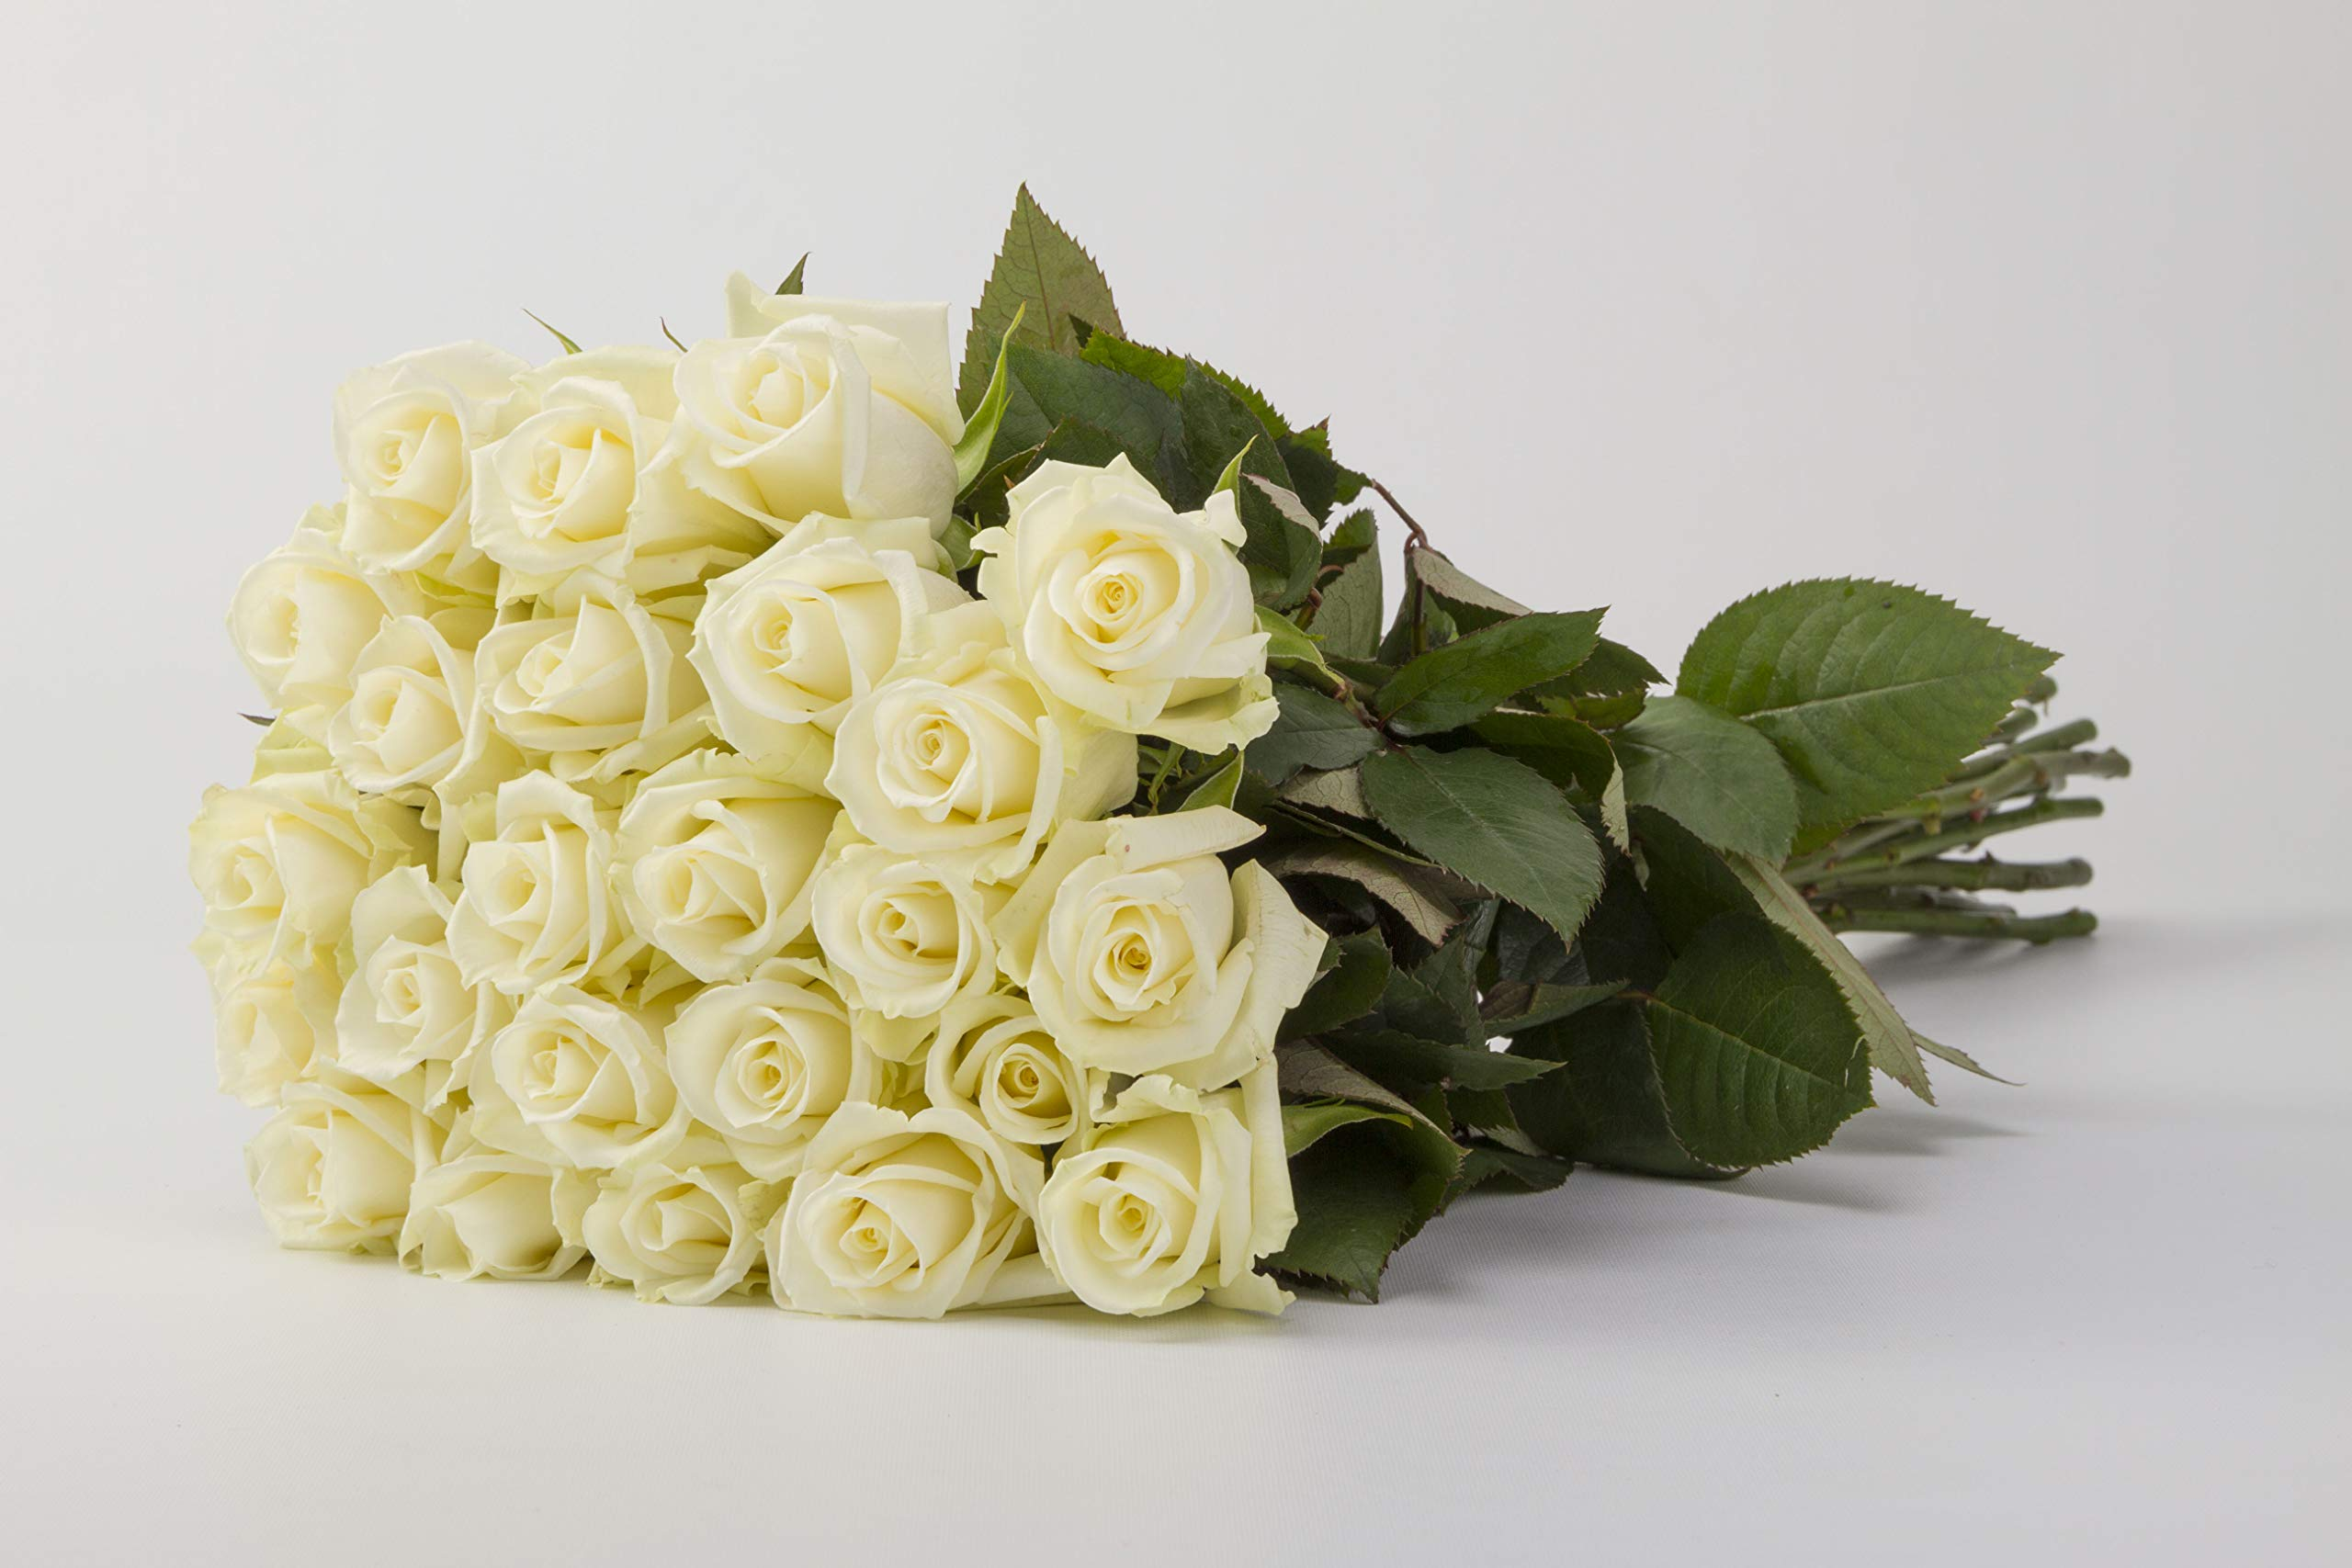 Martha Stewart Roses by BloomsyBox - Two Dozen Perfect Escimo White Roses Selected by Martha and Hand-Tied, Long Vase Life